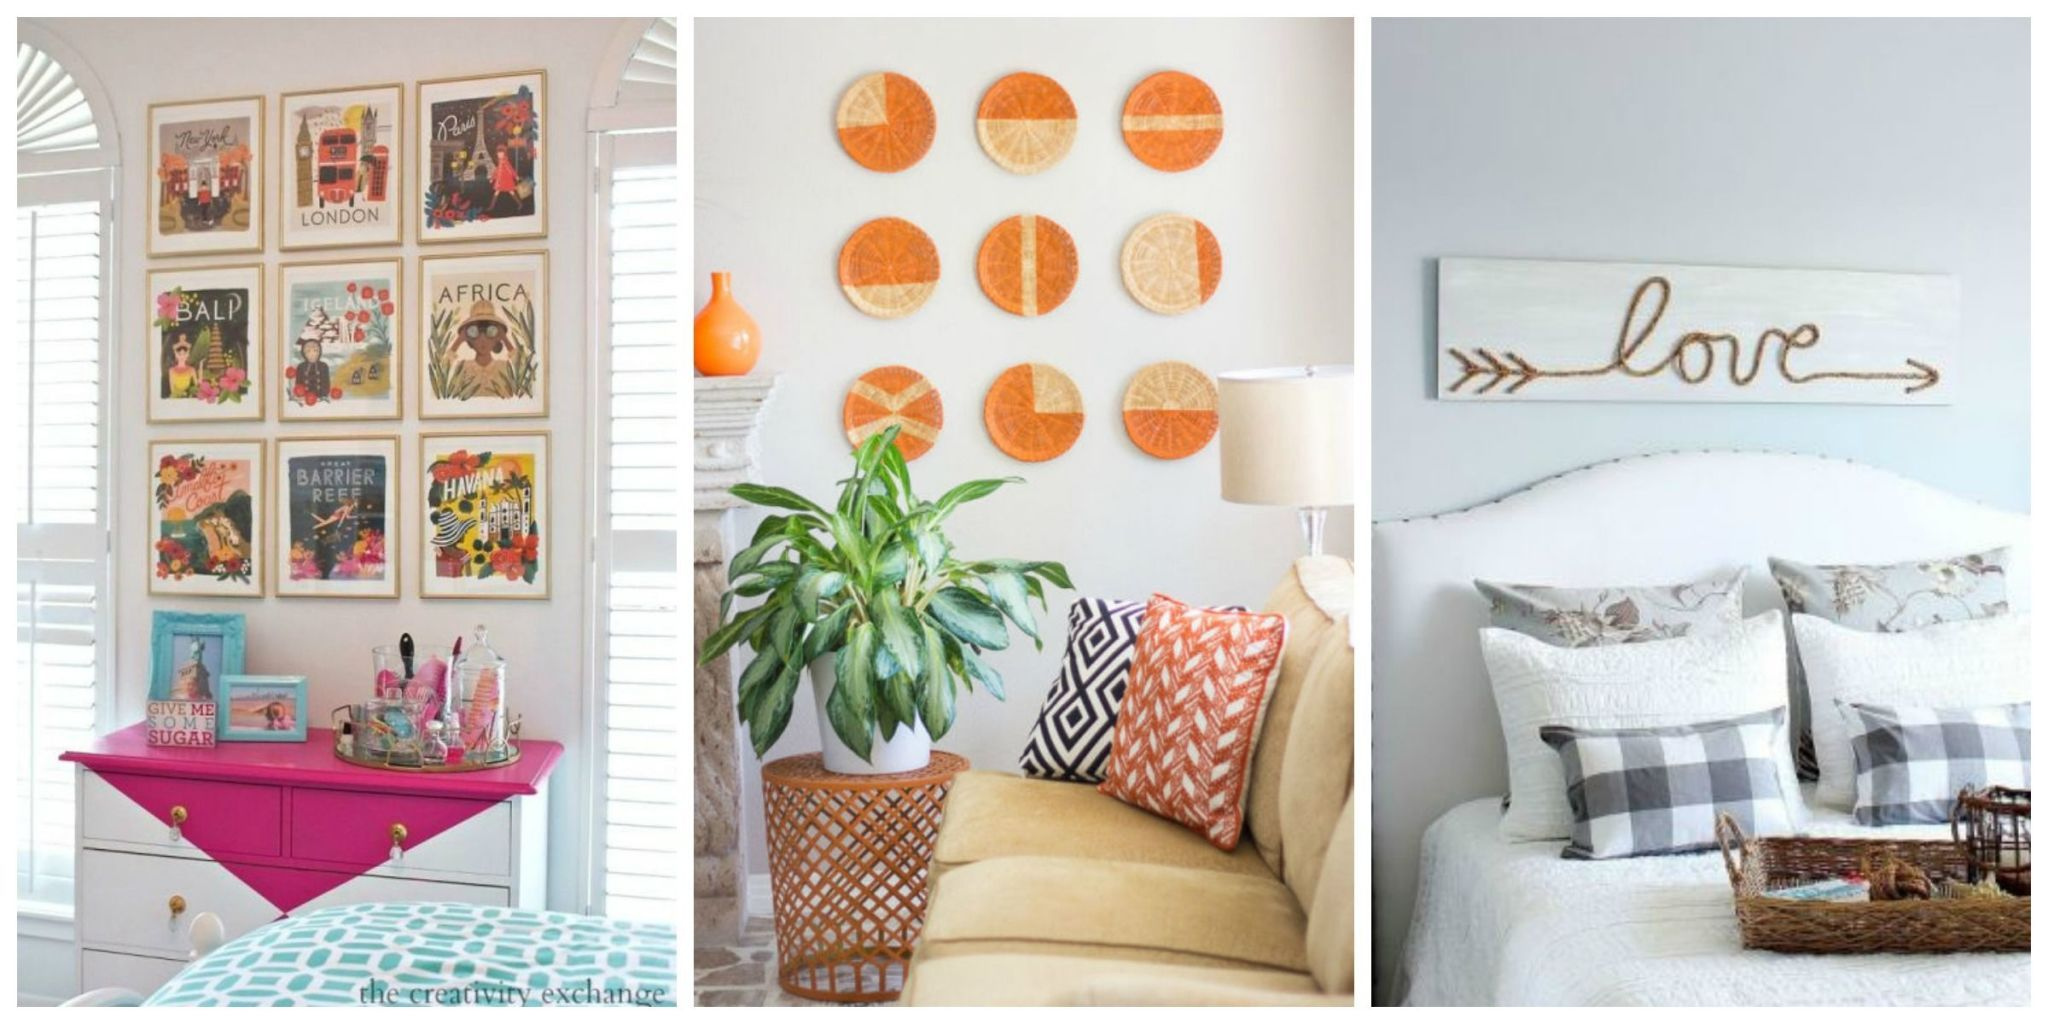 Give Any Room A Fresh Look With These Simple Projects For Personalized Wall  Art.